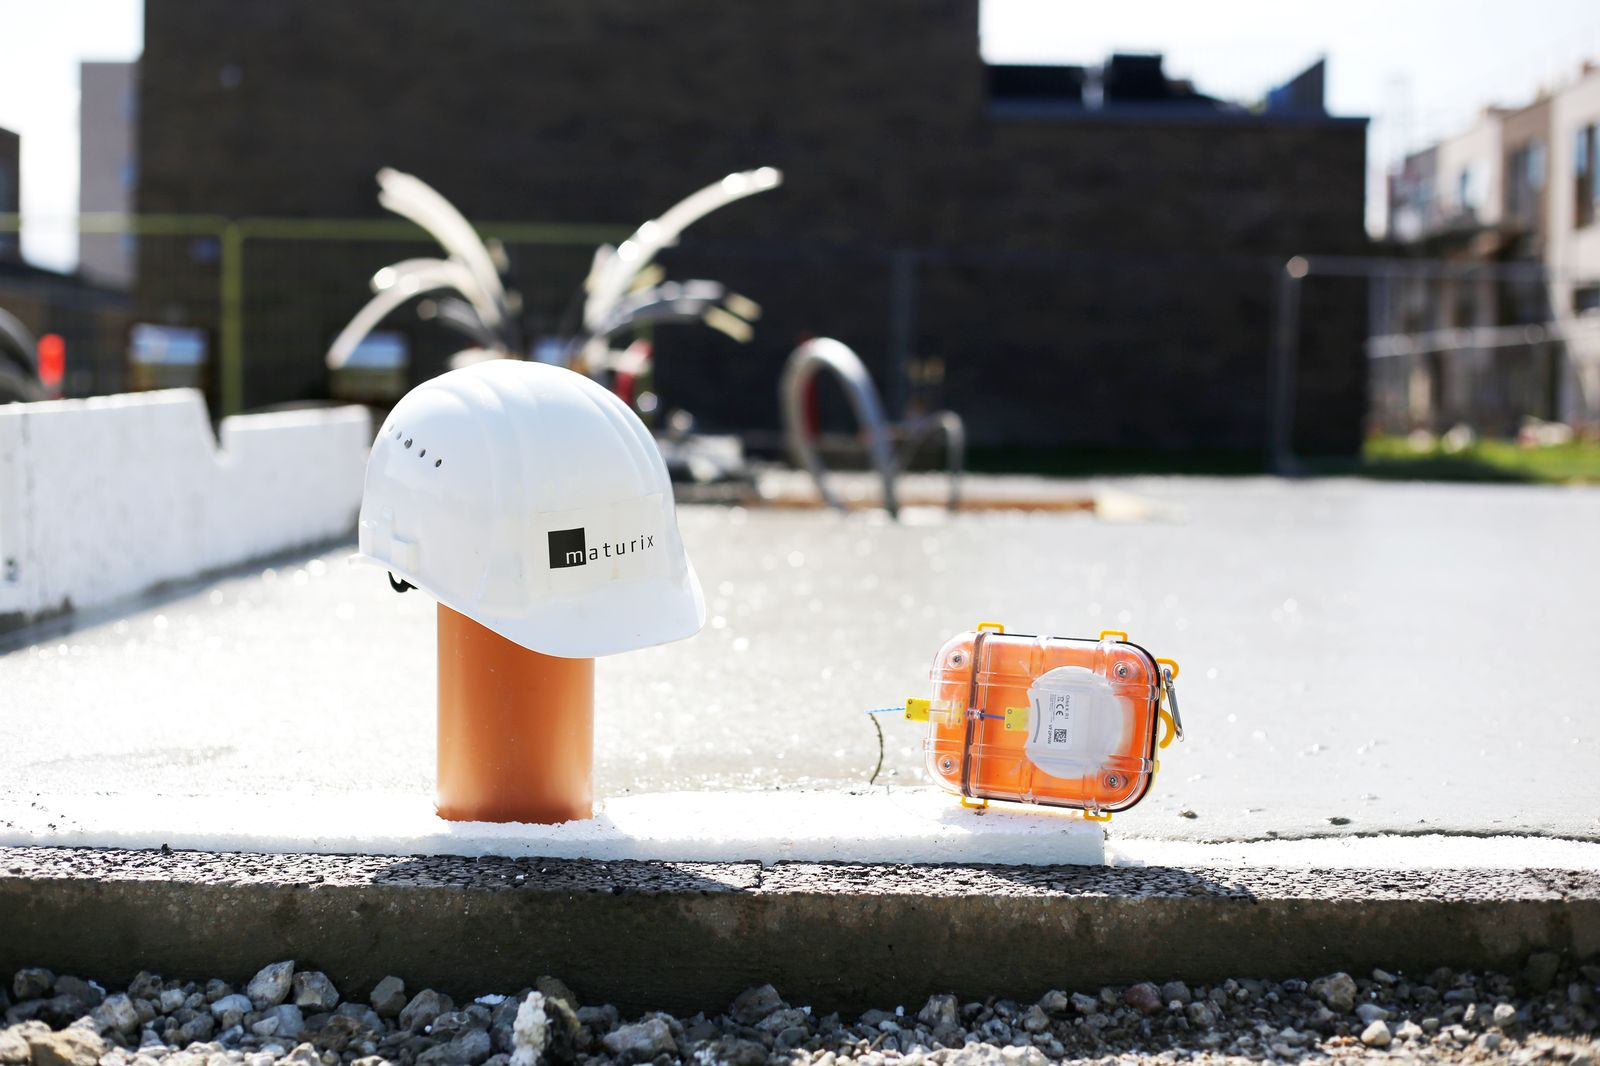 Kryton International Adds Wireless Real-Time Concrete Monitoring to its Smart Concrete® Product Offering through a Partial Acquisition of Sensohive Technologies ApS of Denmark